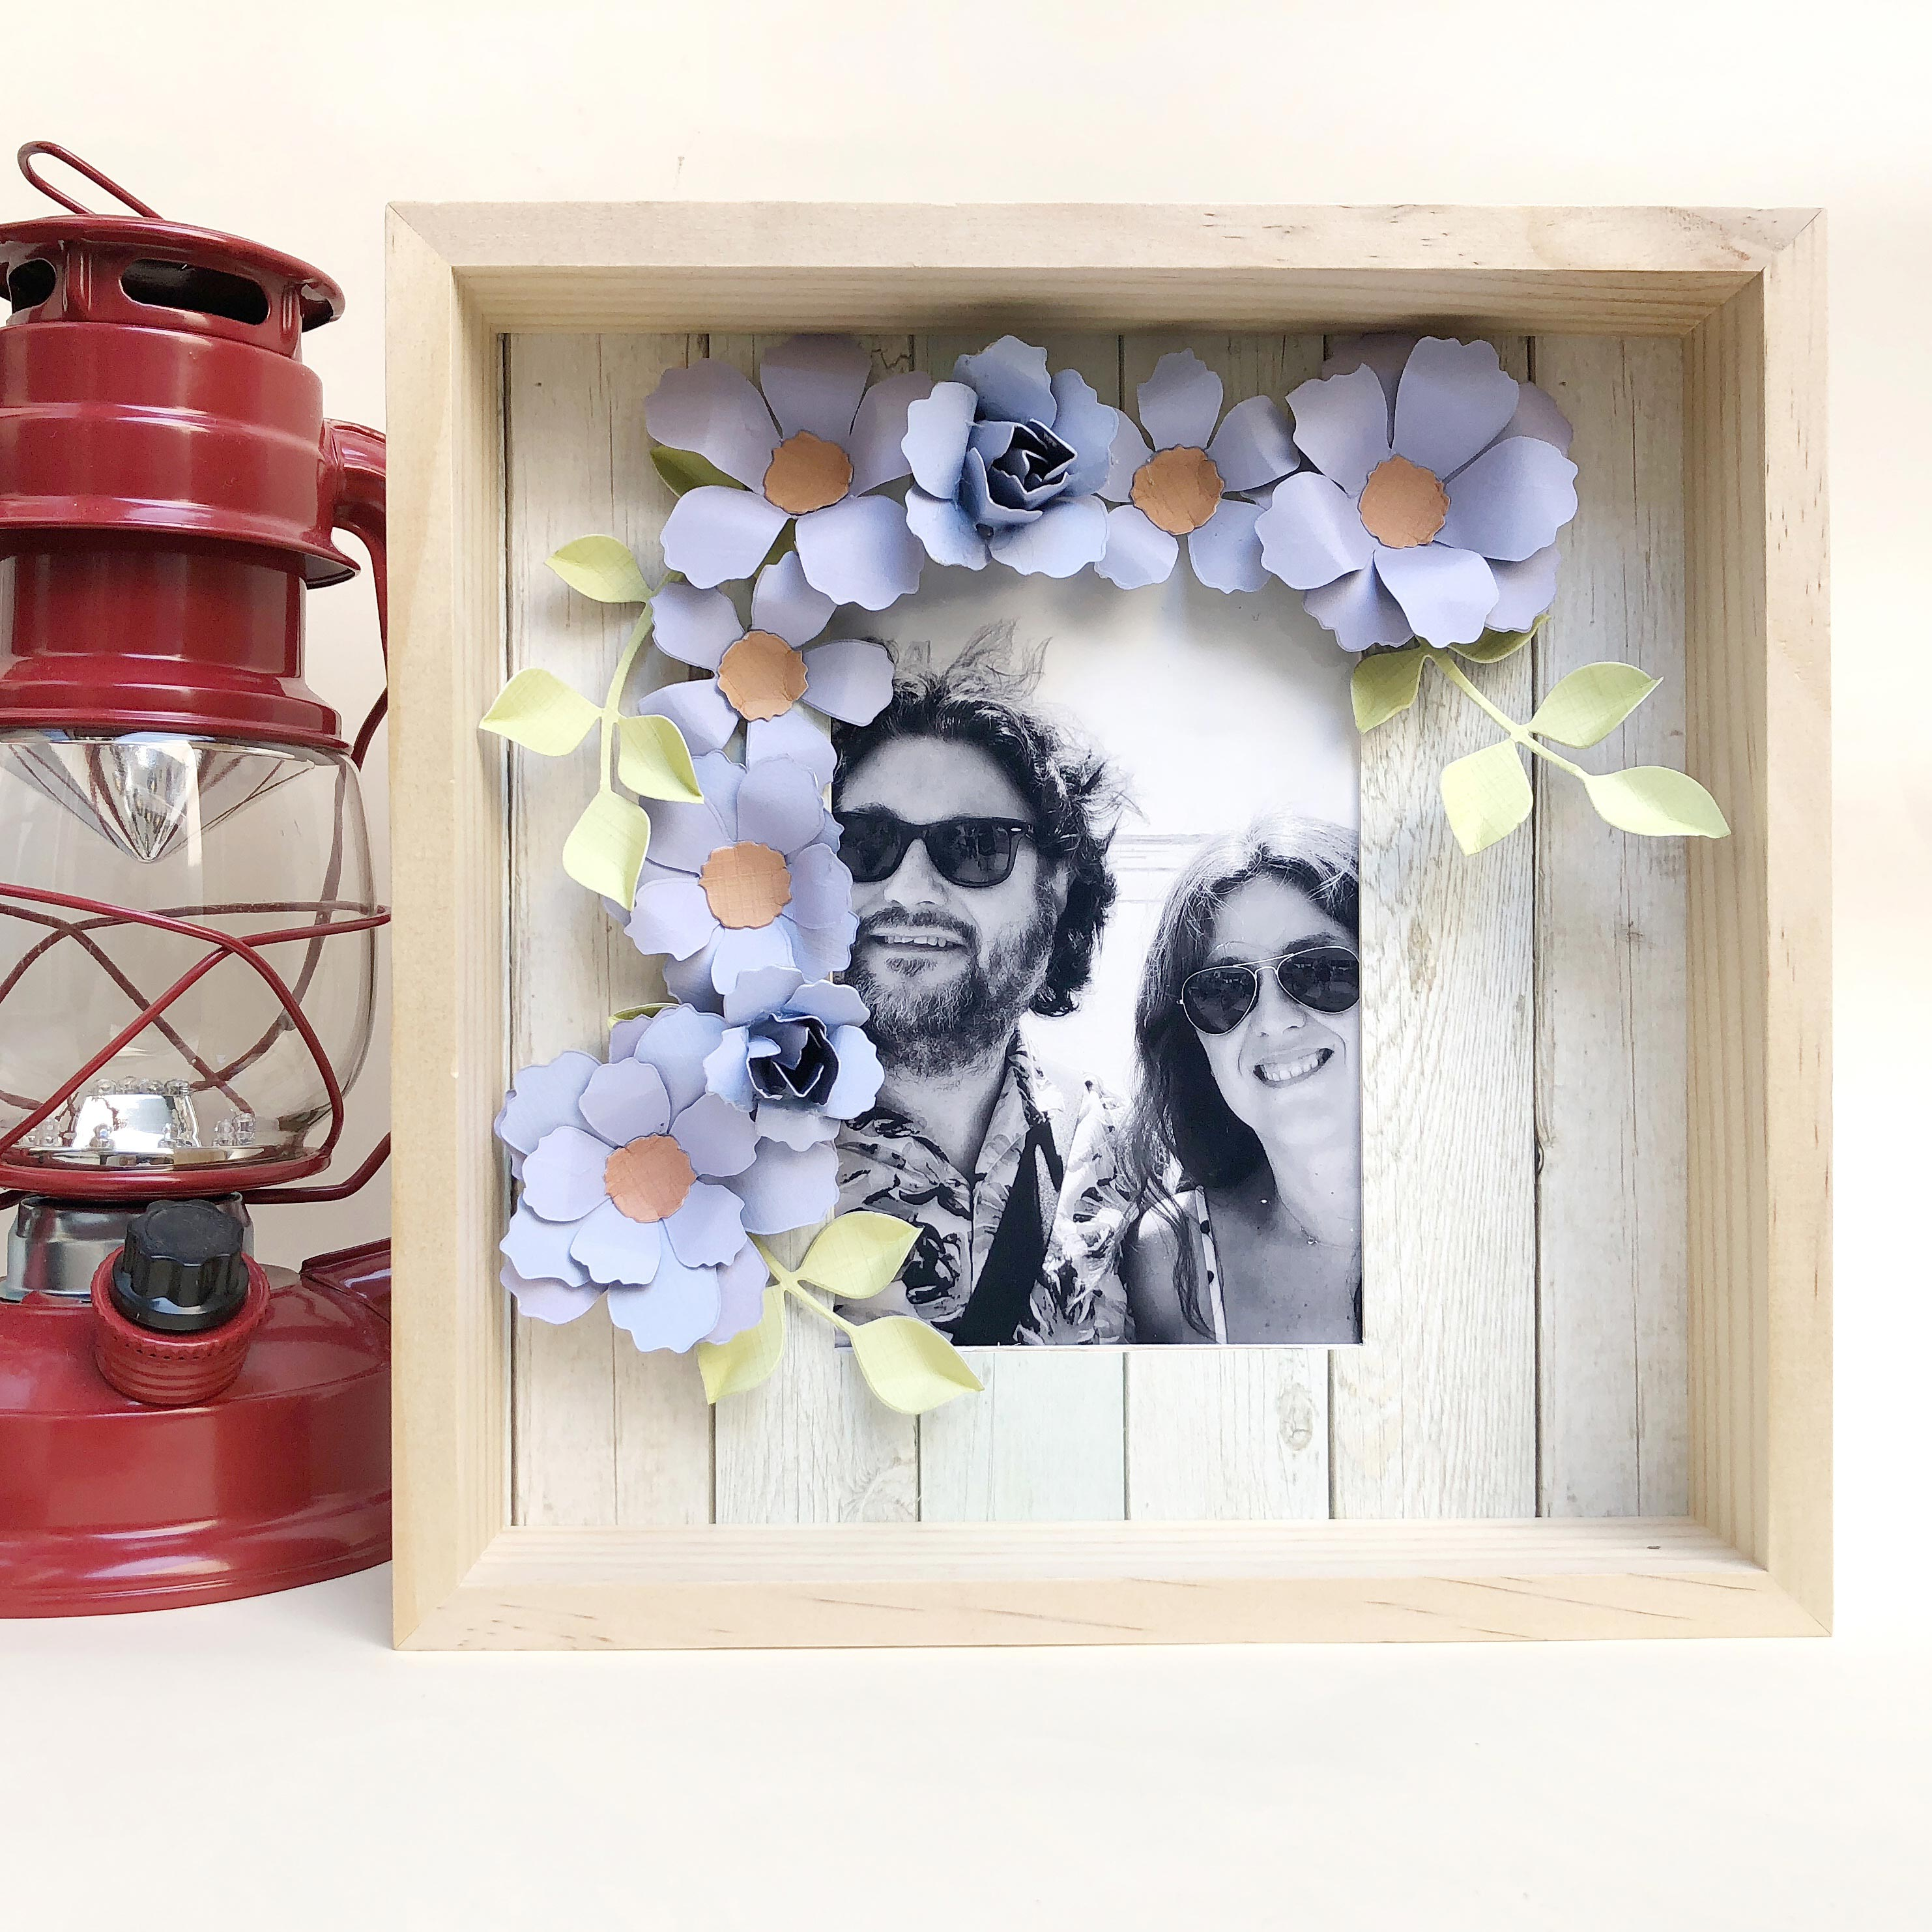 Wood and flowers frame